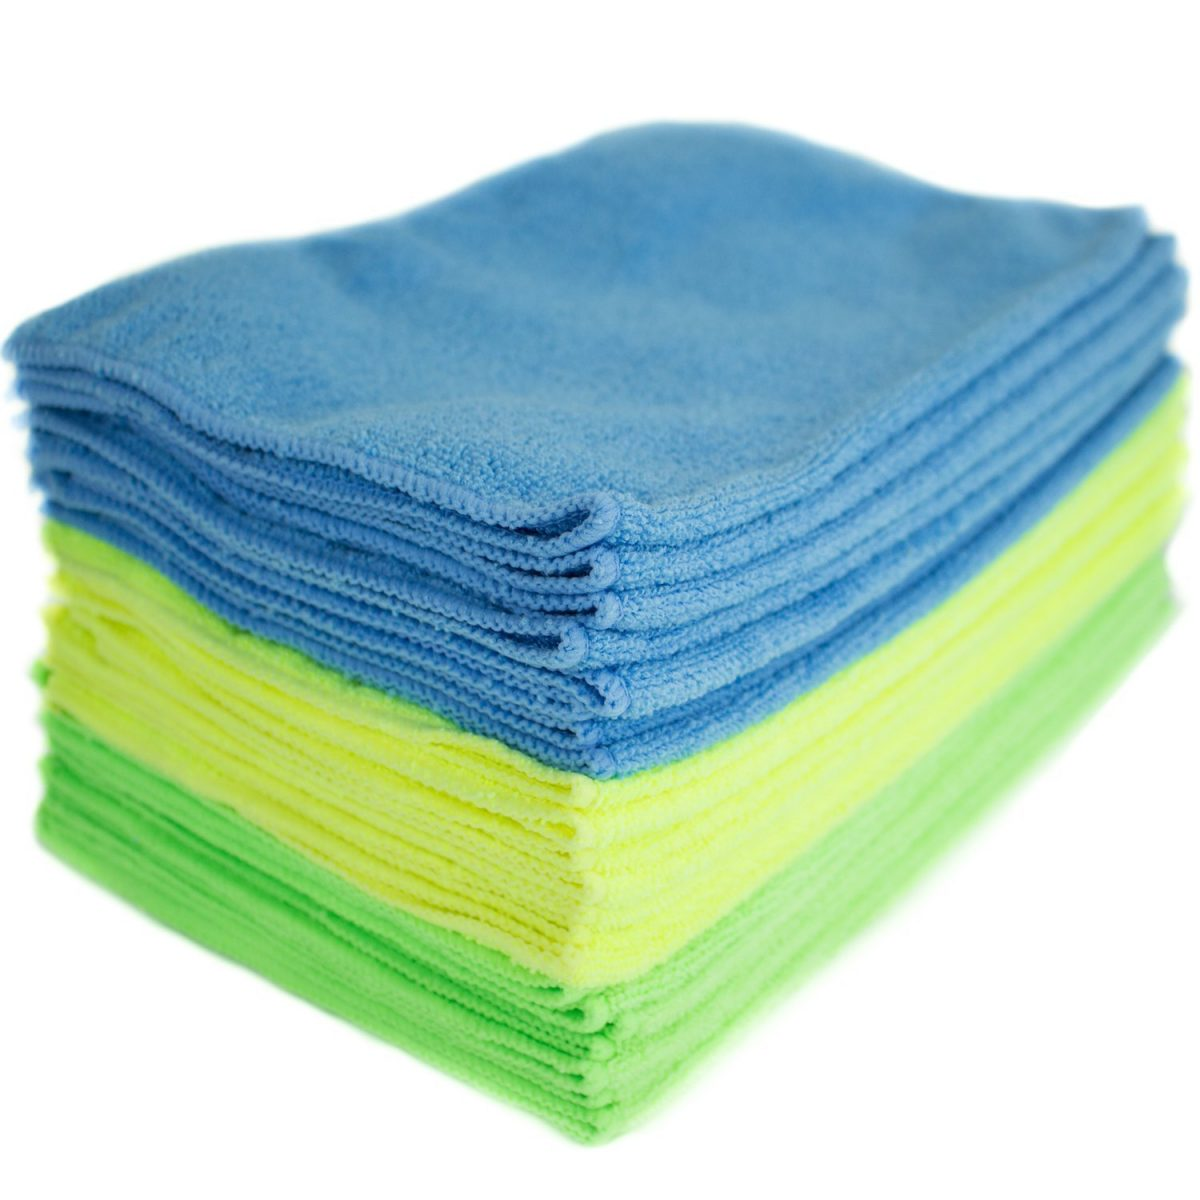 26 Astonishing Cleaning Uses for Microfiber Cloths